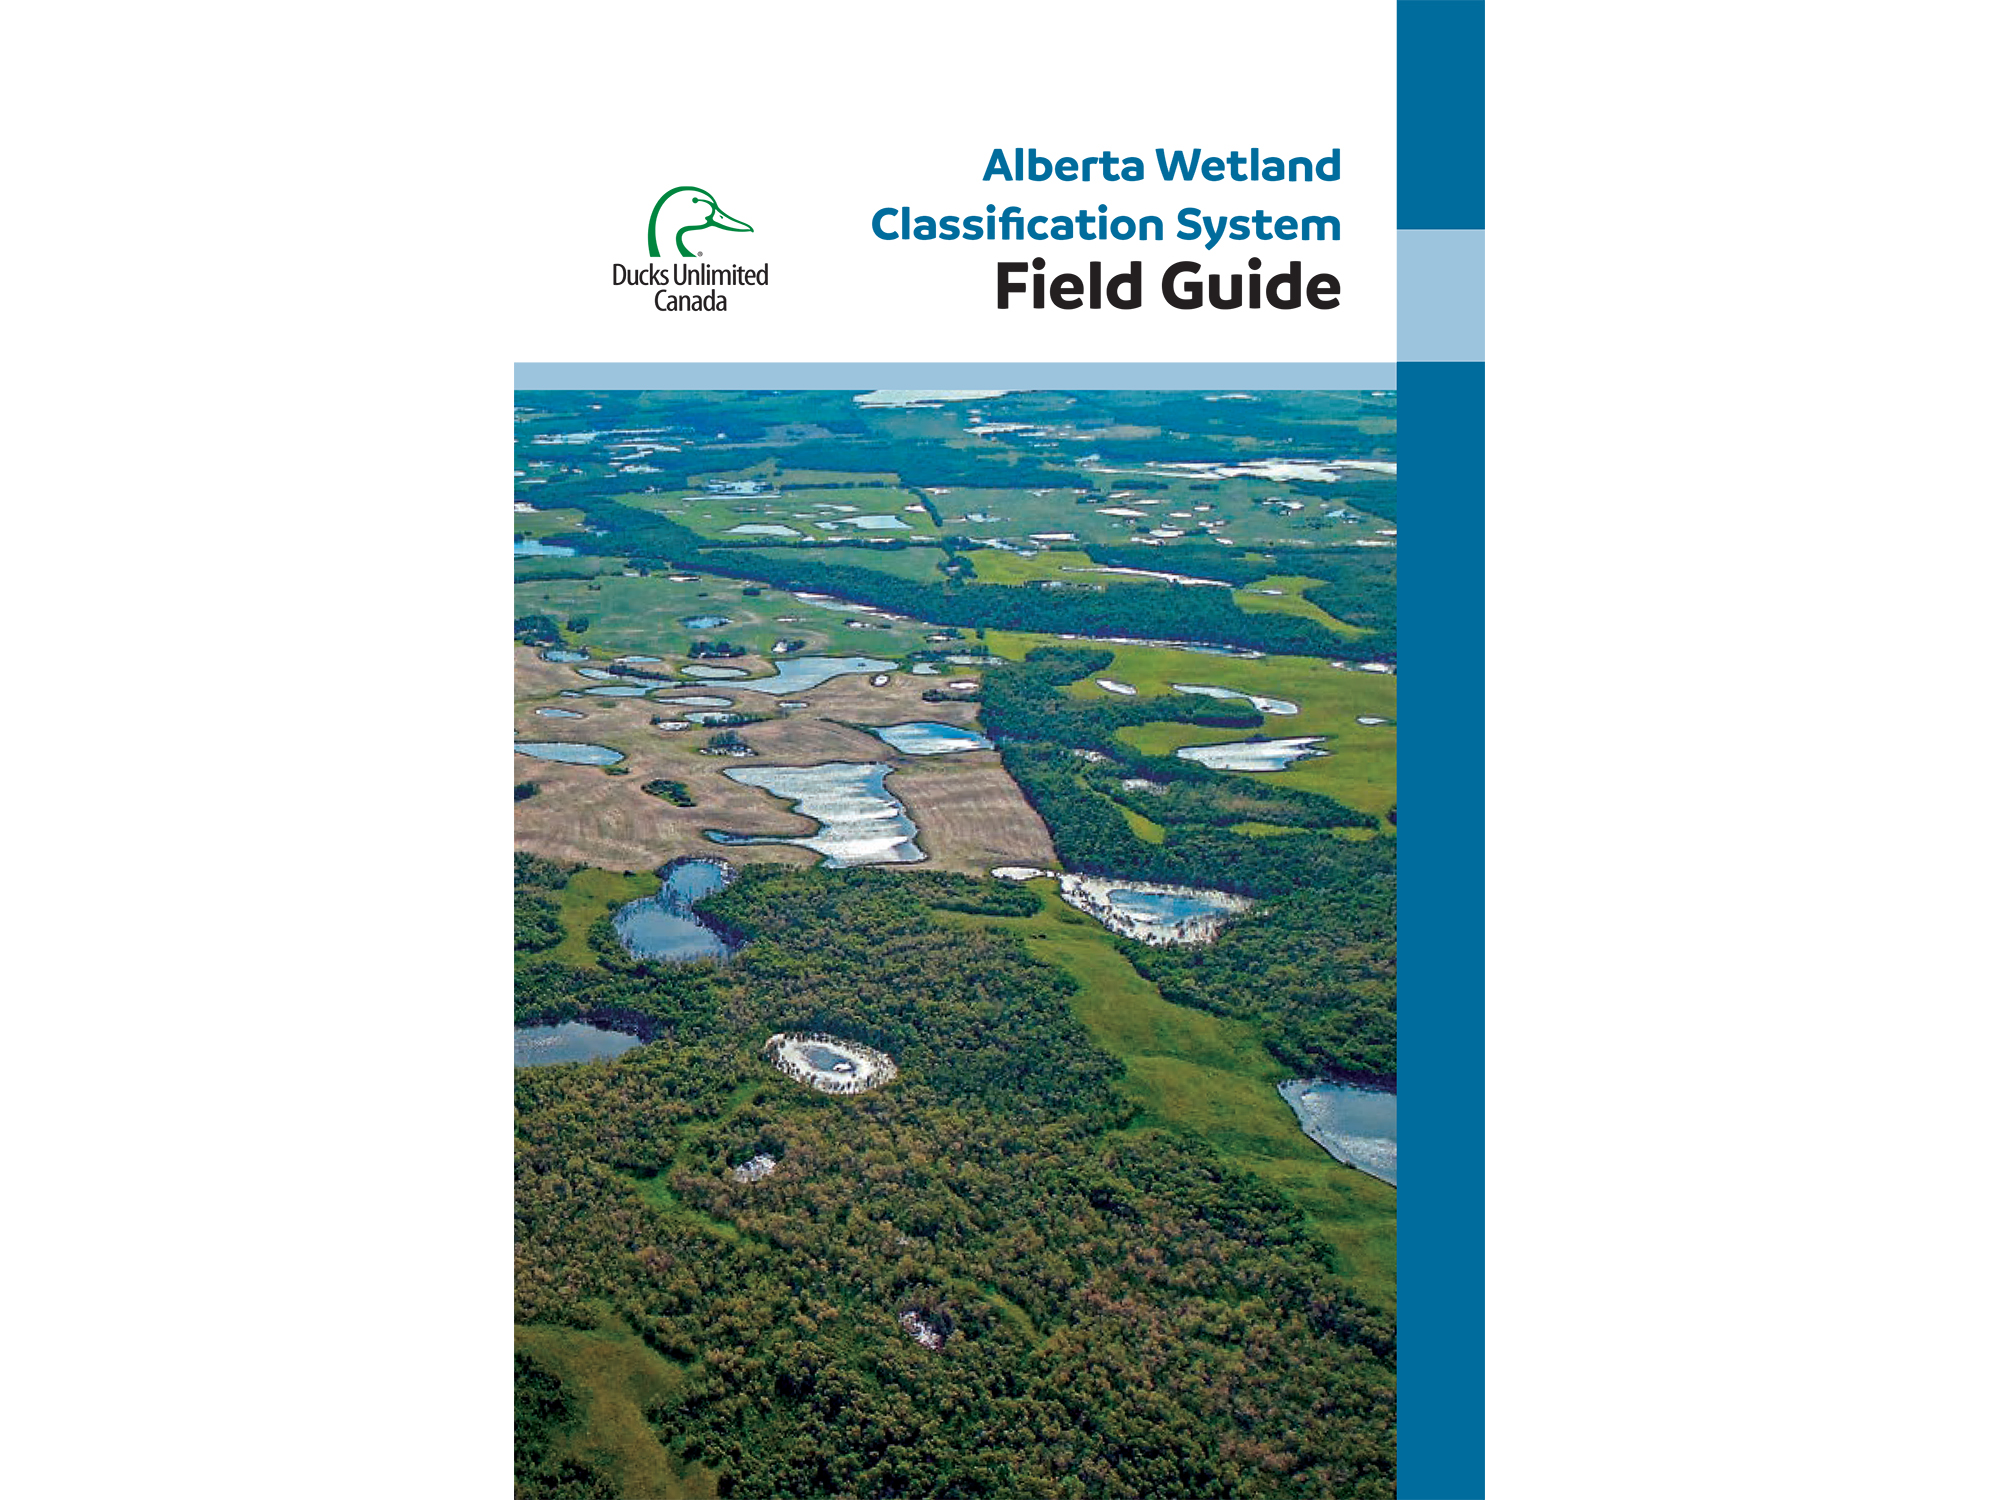 alberta wetland classification system field guide